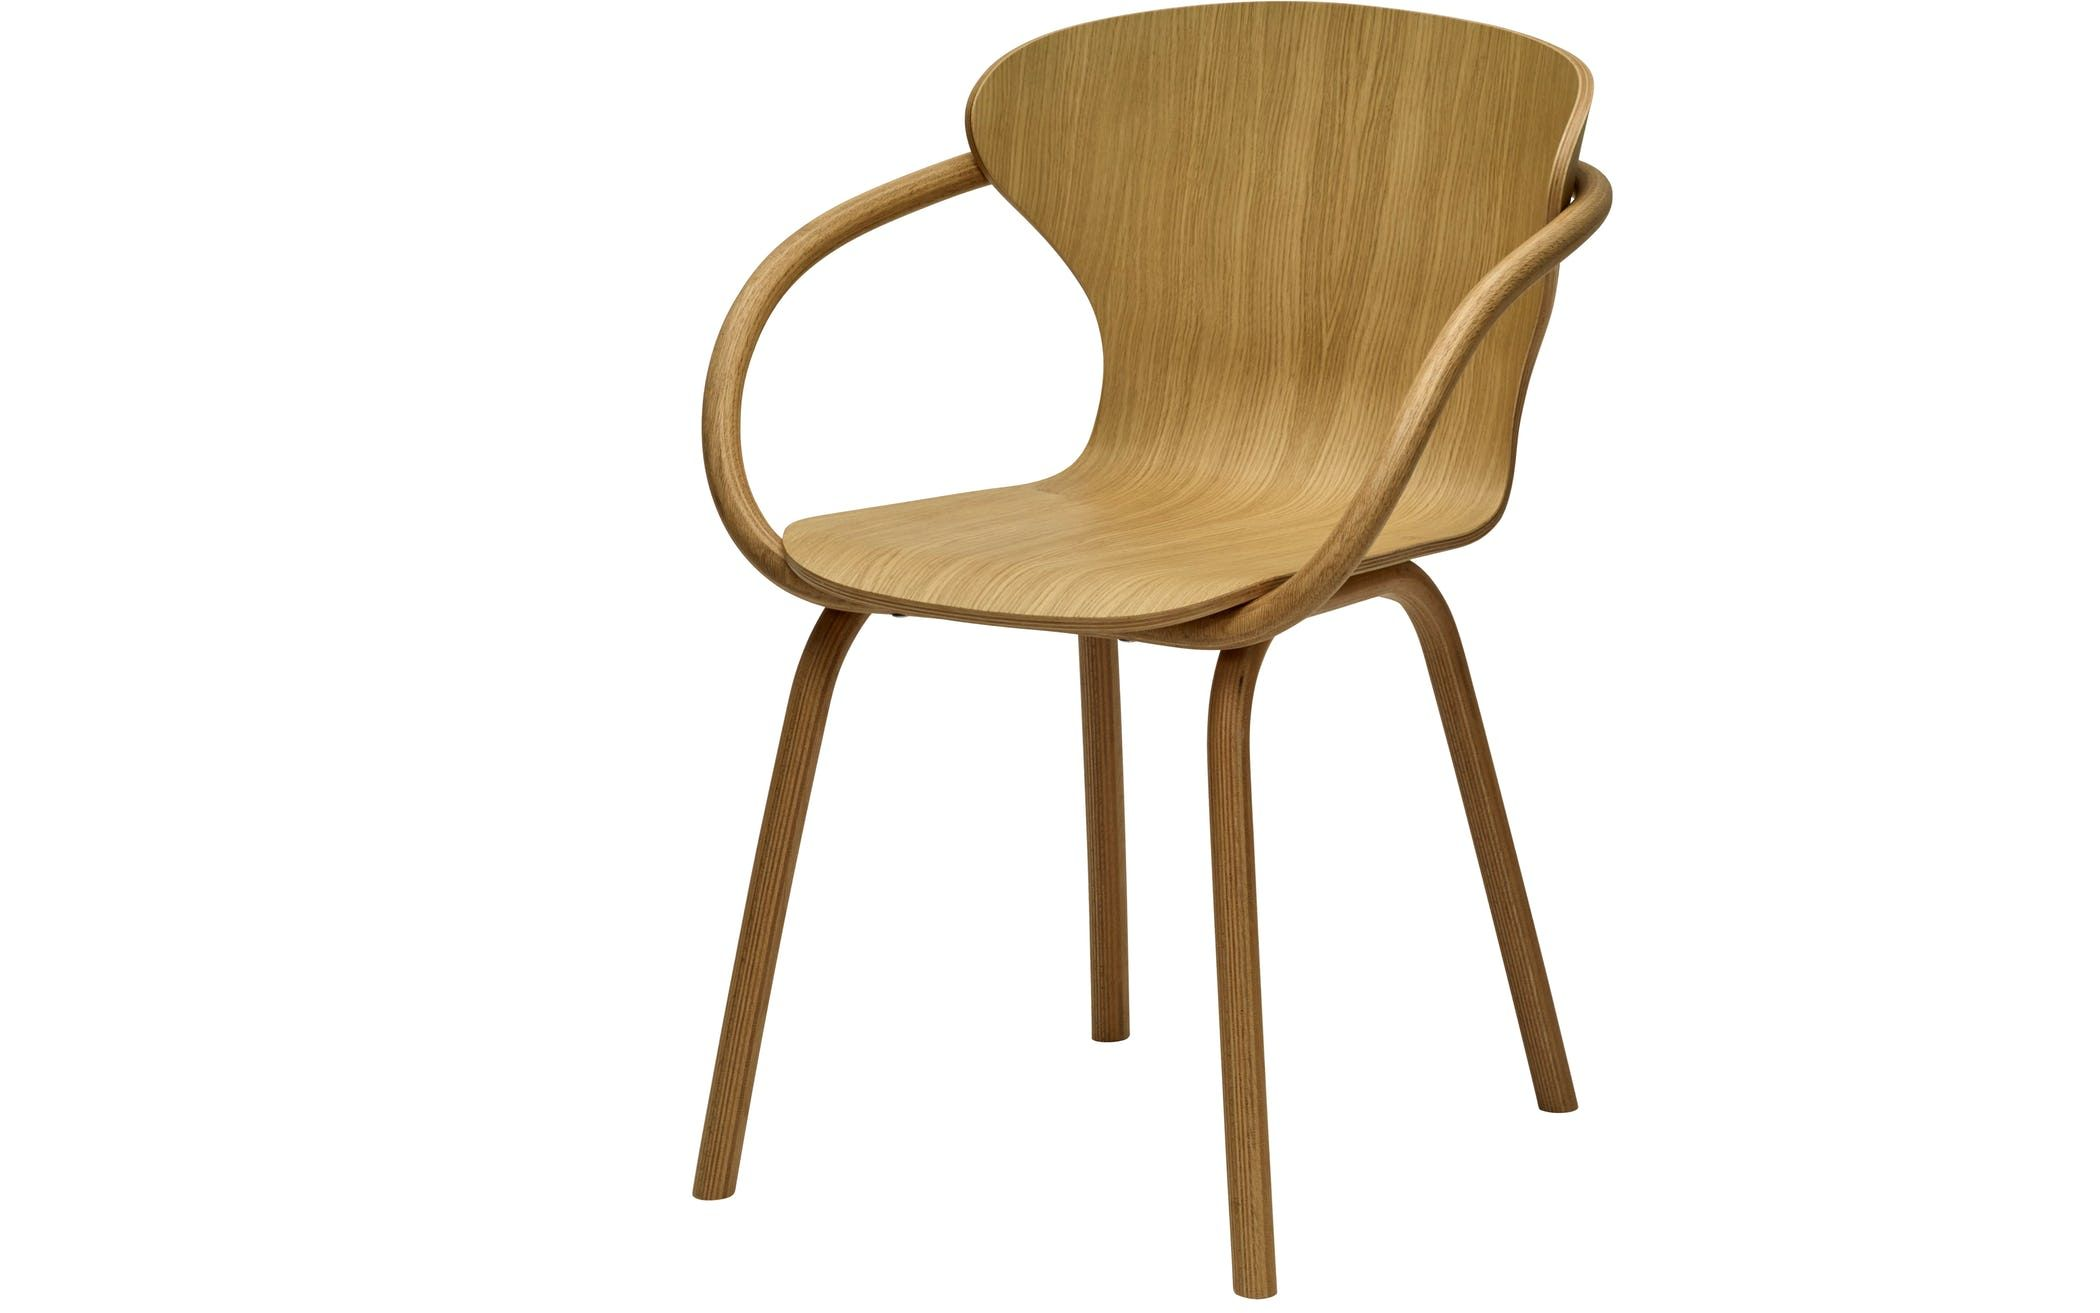 Bend Dining Chair By Bolia Dining Chairs Chair Contemporary Furniture Design